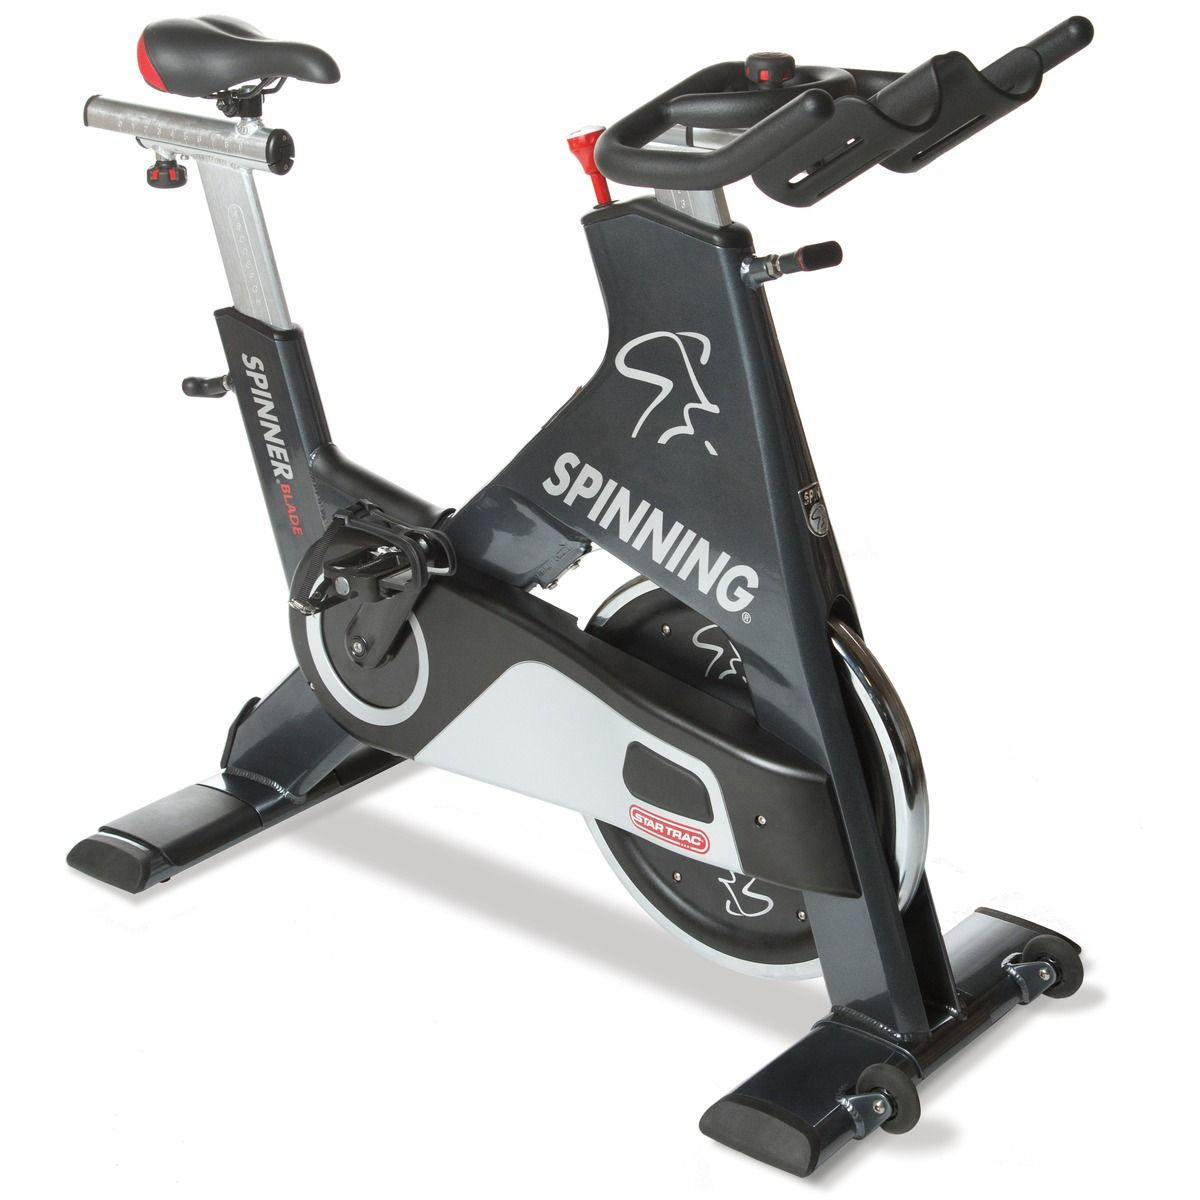 The #Spinner® Blade is one of the best bikes right now! Our Spinning room is equipped with 20 SpinnerBlade Blade